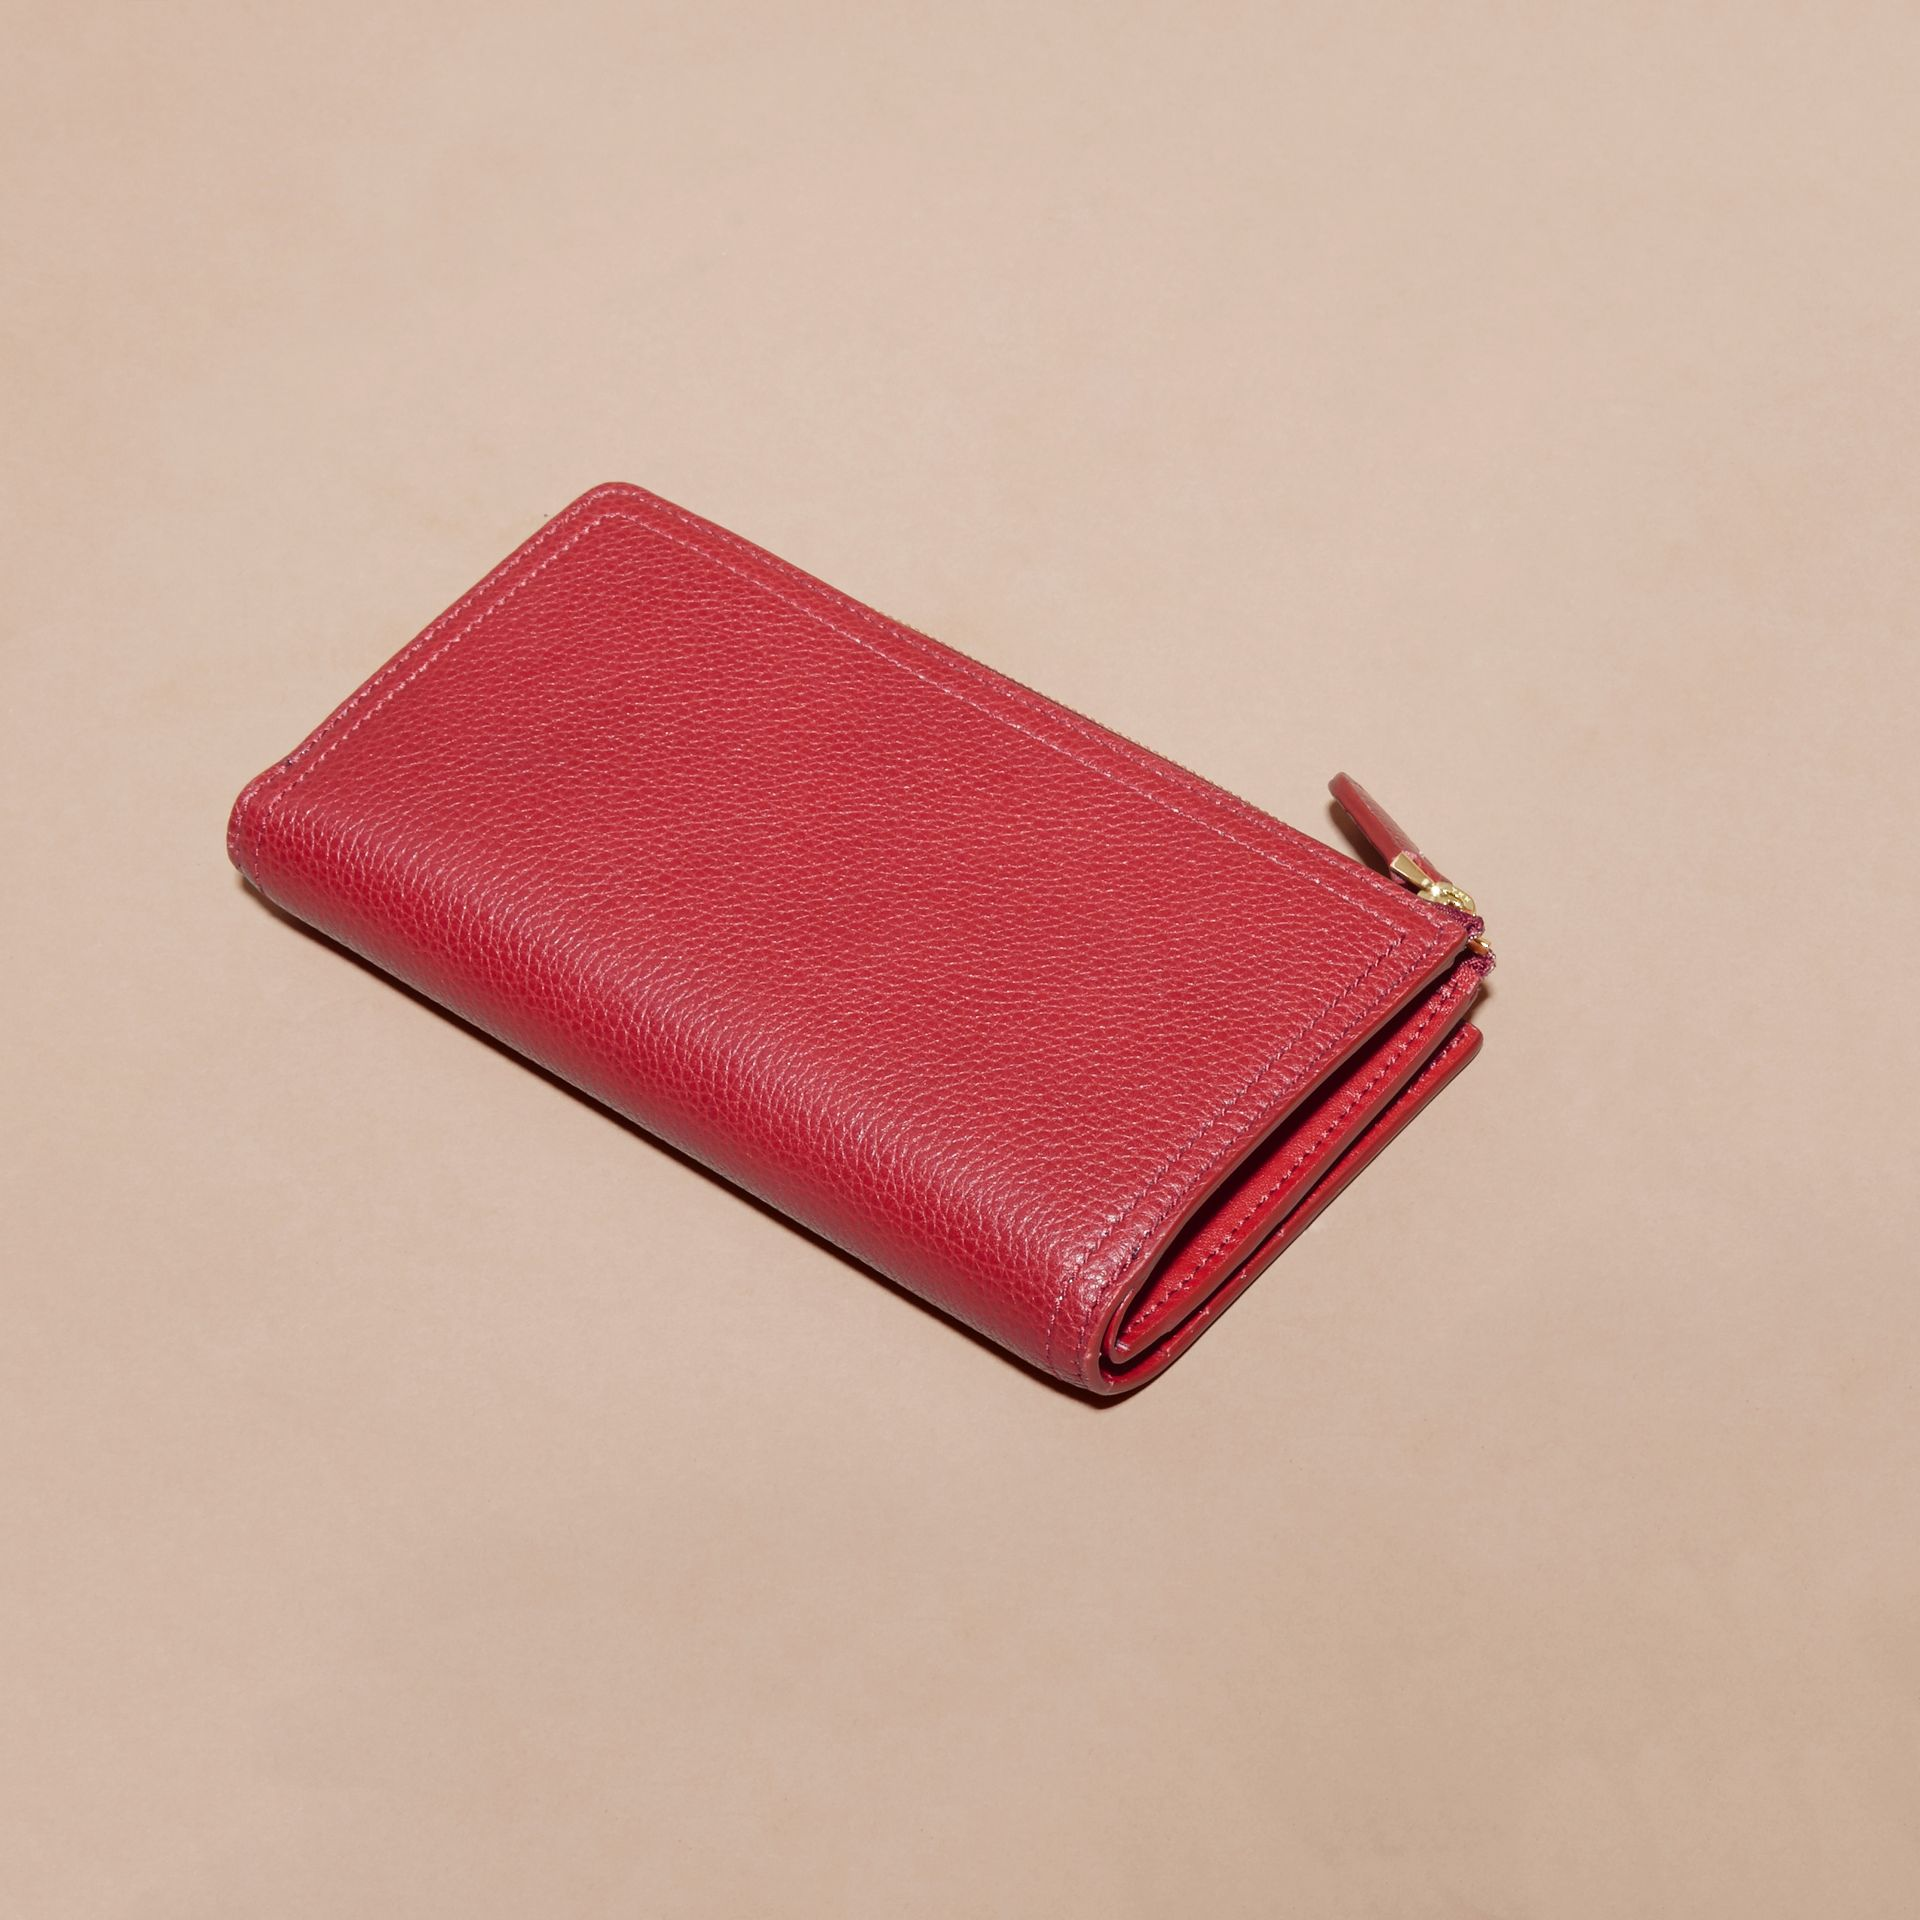 Grainy Leather Ziparound Wallet in Parade Red - Women | Burberry Hong Kong - gallery image 3